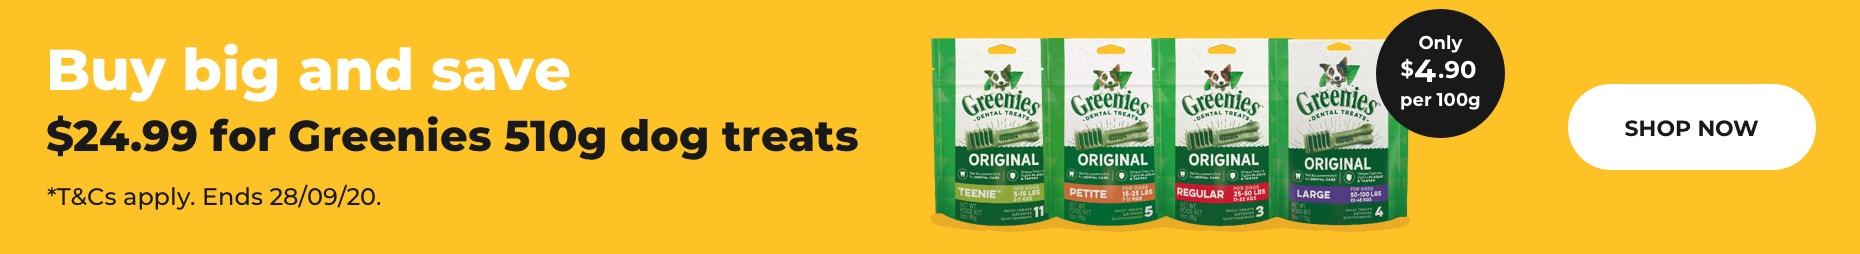 https://www.petbarn.com.au/dogs/dog-treats/by/brand/greenies/